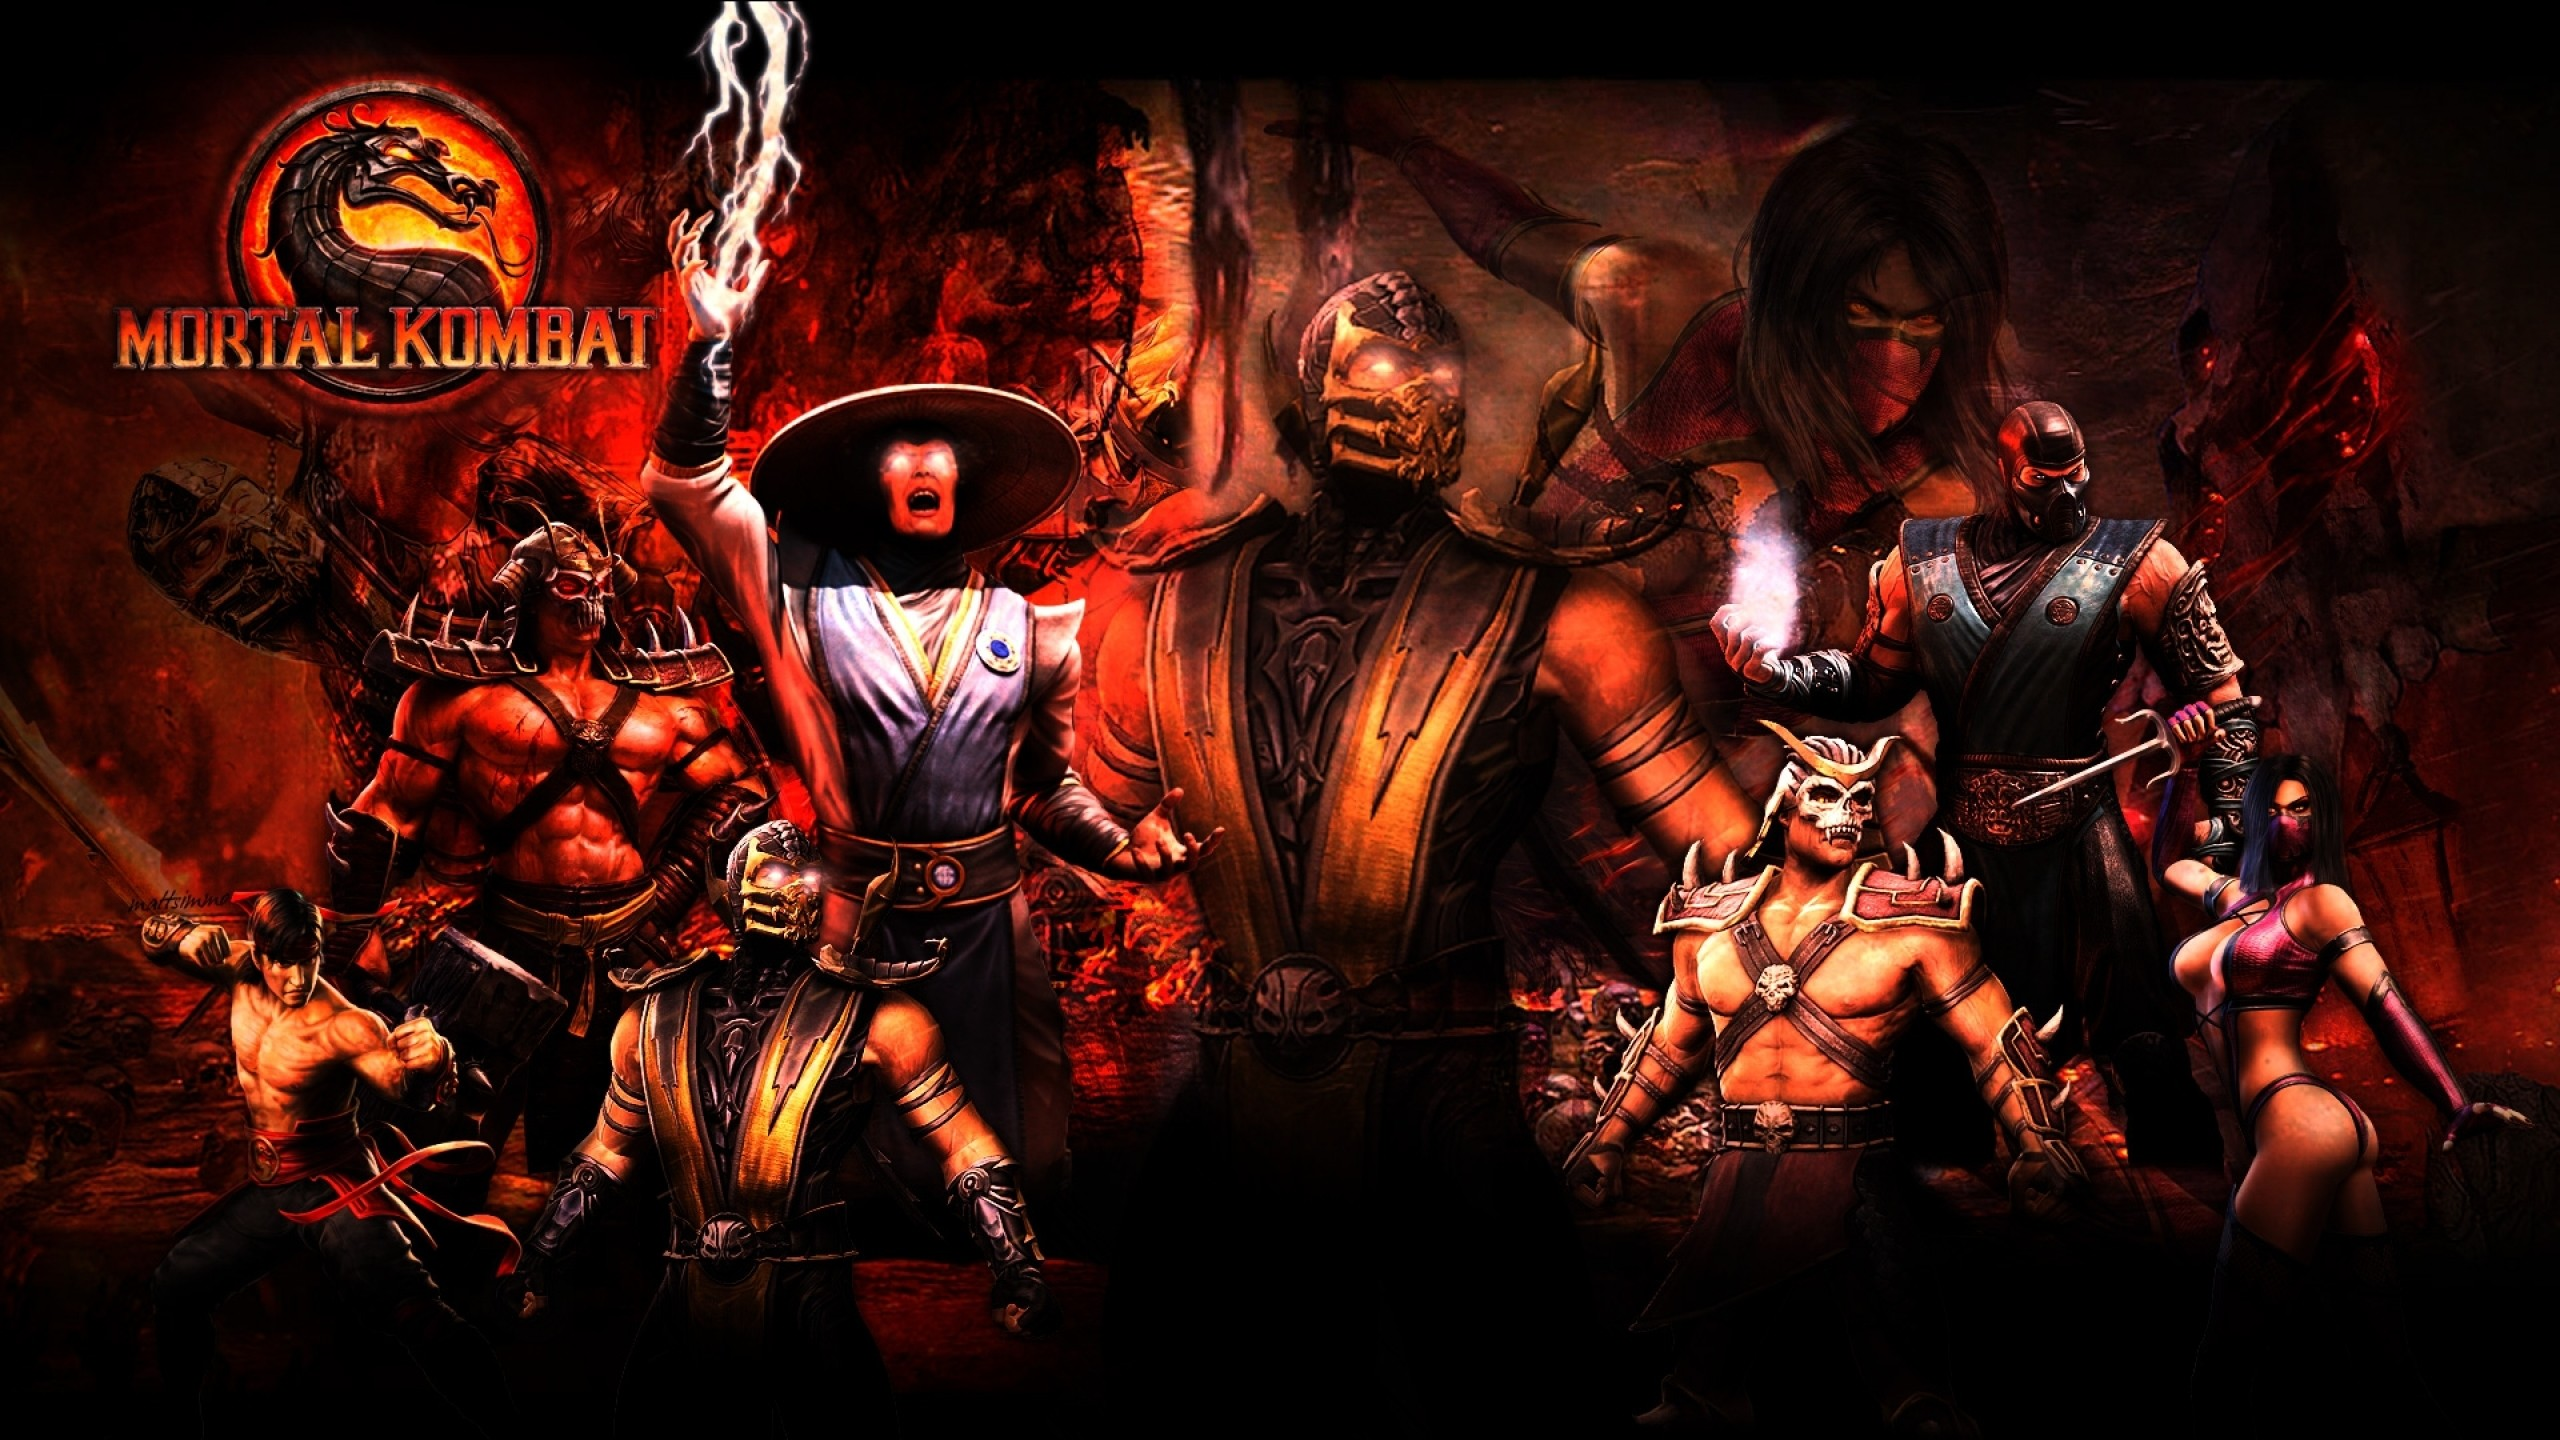 2560x1440 Dark Dragon Fire Logo Mortal Kombat · HD Wallpaper | Background Image  ID:282134